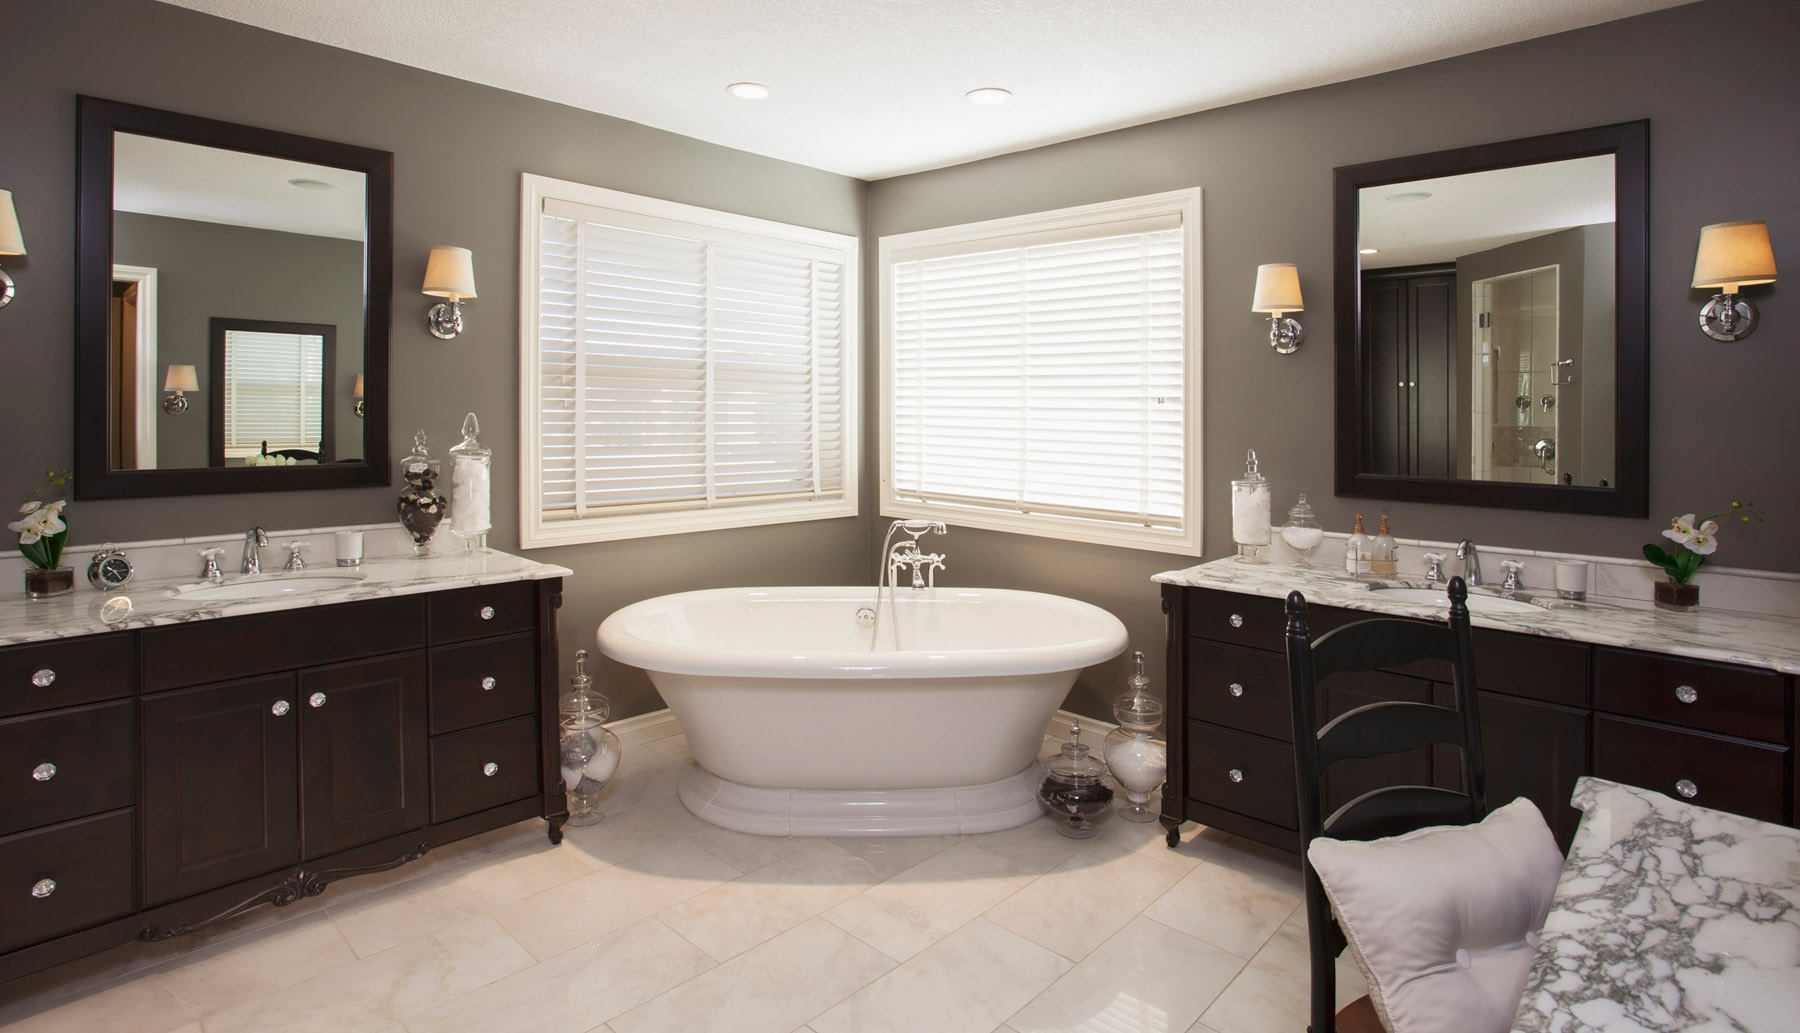 Bathroom renovations with a scent of citrus for Bathroom renos images